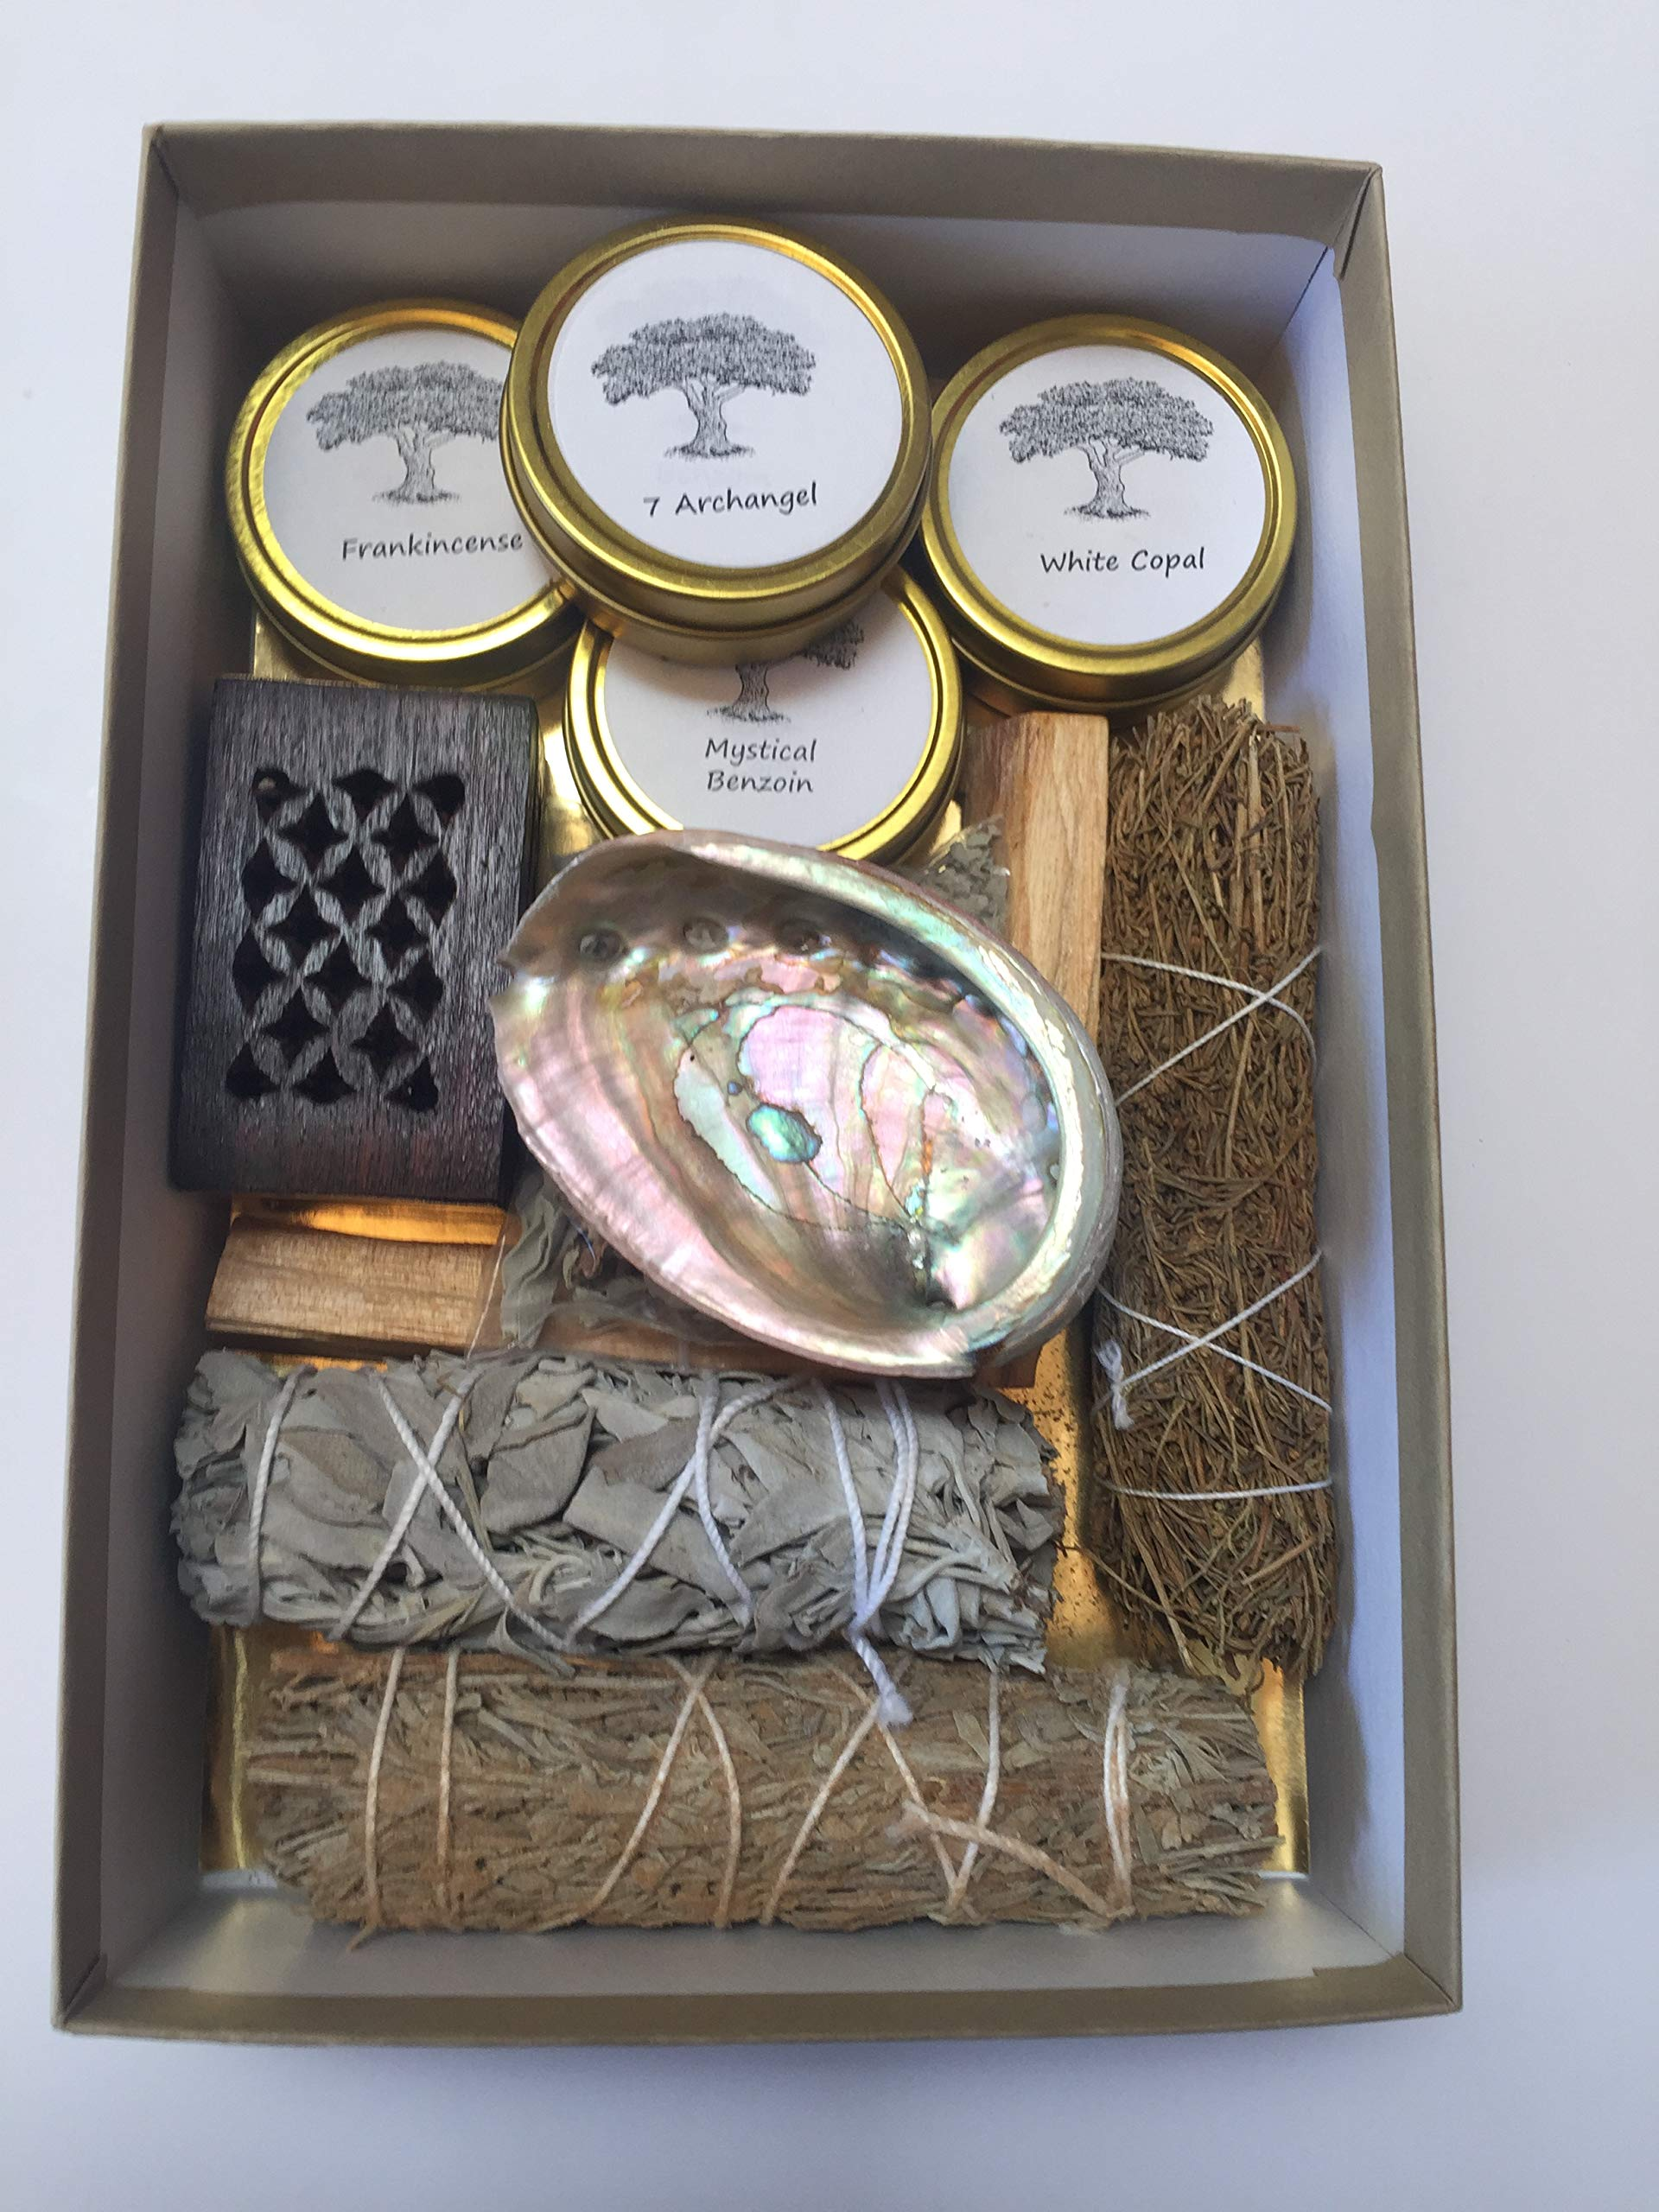 Resin Incense and Sage Smudges Variety Gift Kit includes, Amber Resin, Rose Resin, White Copal, Mystical Benzoin, Frankincense, White Sage Smudge, Desert Sage, Palo Santo Sticks and Abalone Shell by Sacred Scents For You (Image #8)